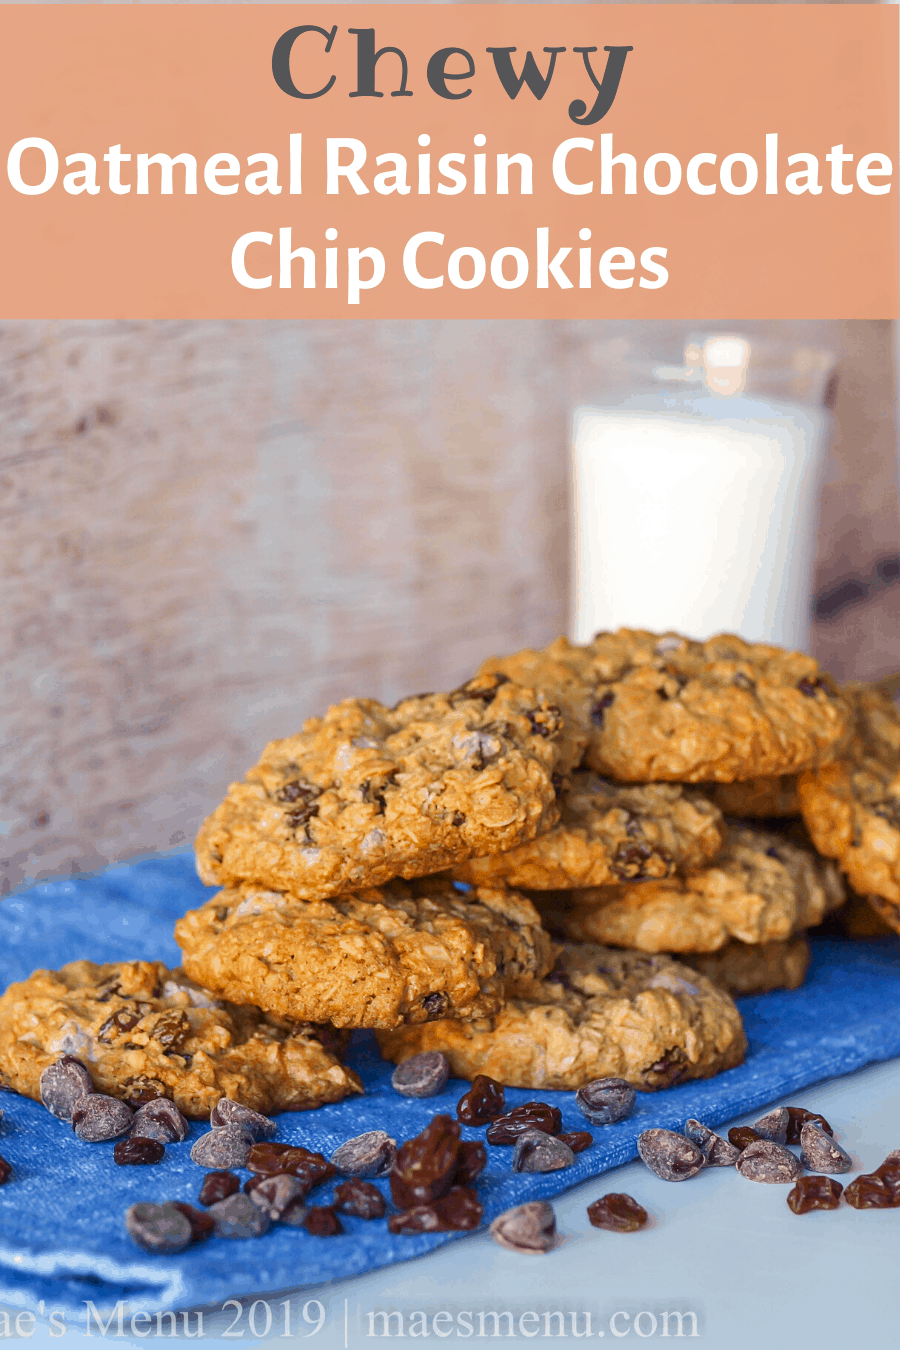 A pinterest pin for oatmeal raisin chocolate chip cookies